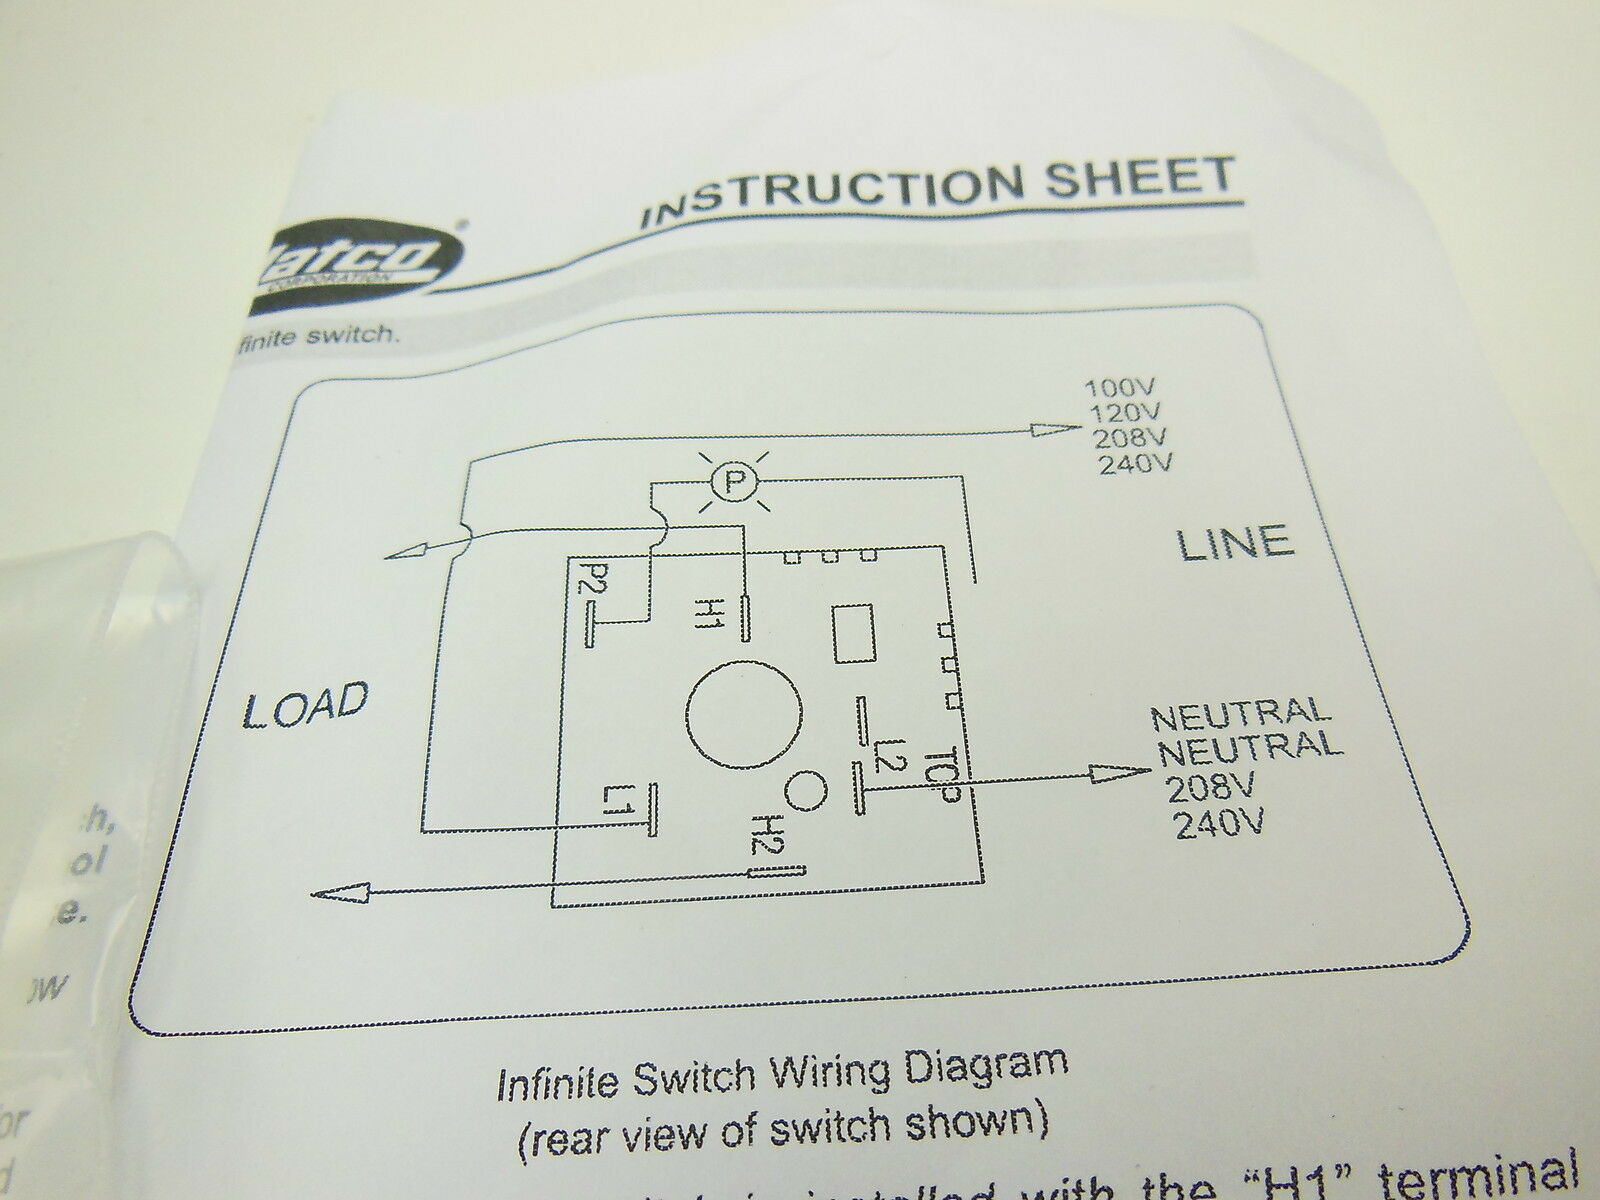 Amazing Infinite Switch Wiring Diagram Image Collection - Wiring ...